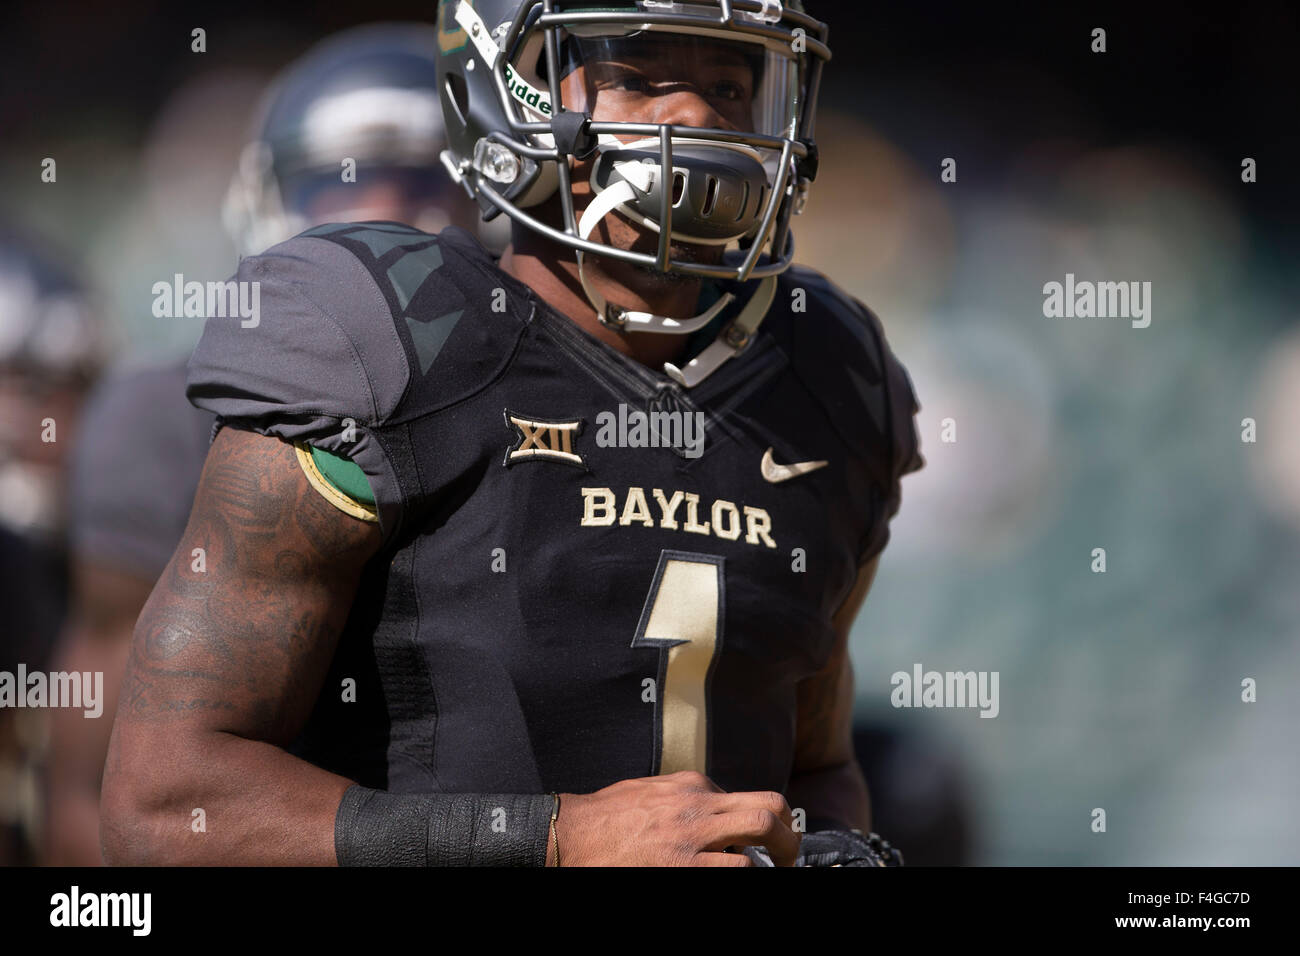 Waco, Texas, USA. 17th Oct, 2015. Corey Coleman (1) of the Baylor Bears warming up before the NCAA football game Stock Photo